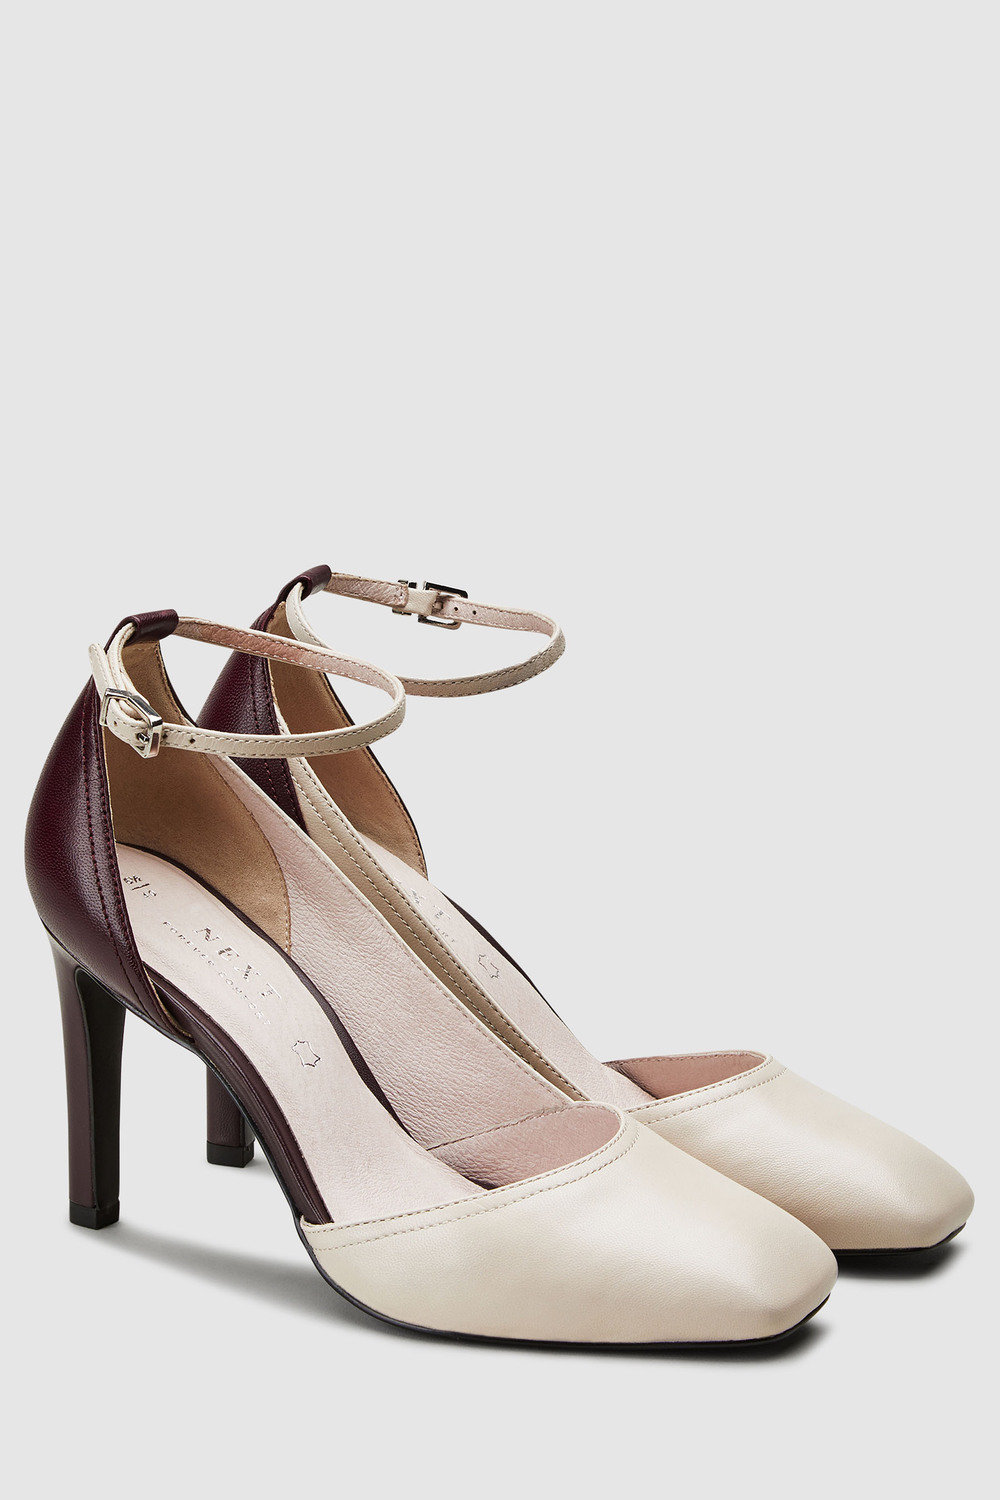 1e5adc53b54 Next Leather Forever Comfort Asymmetric Cut Two Part Shoes Online ...